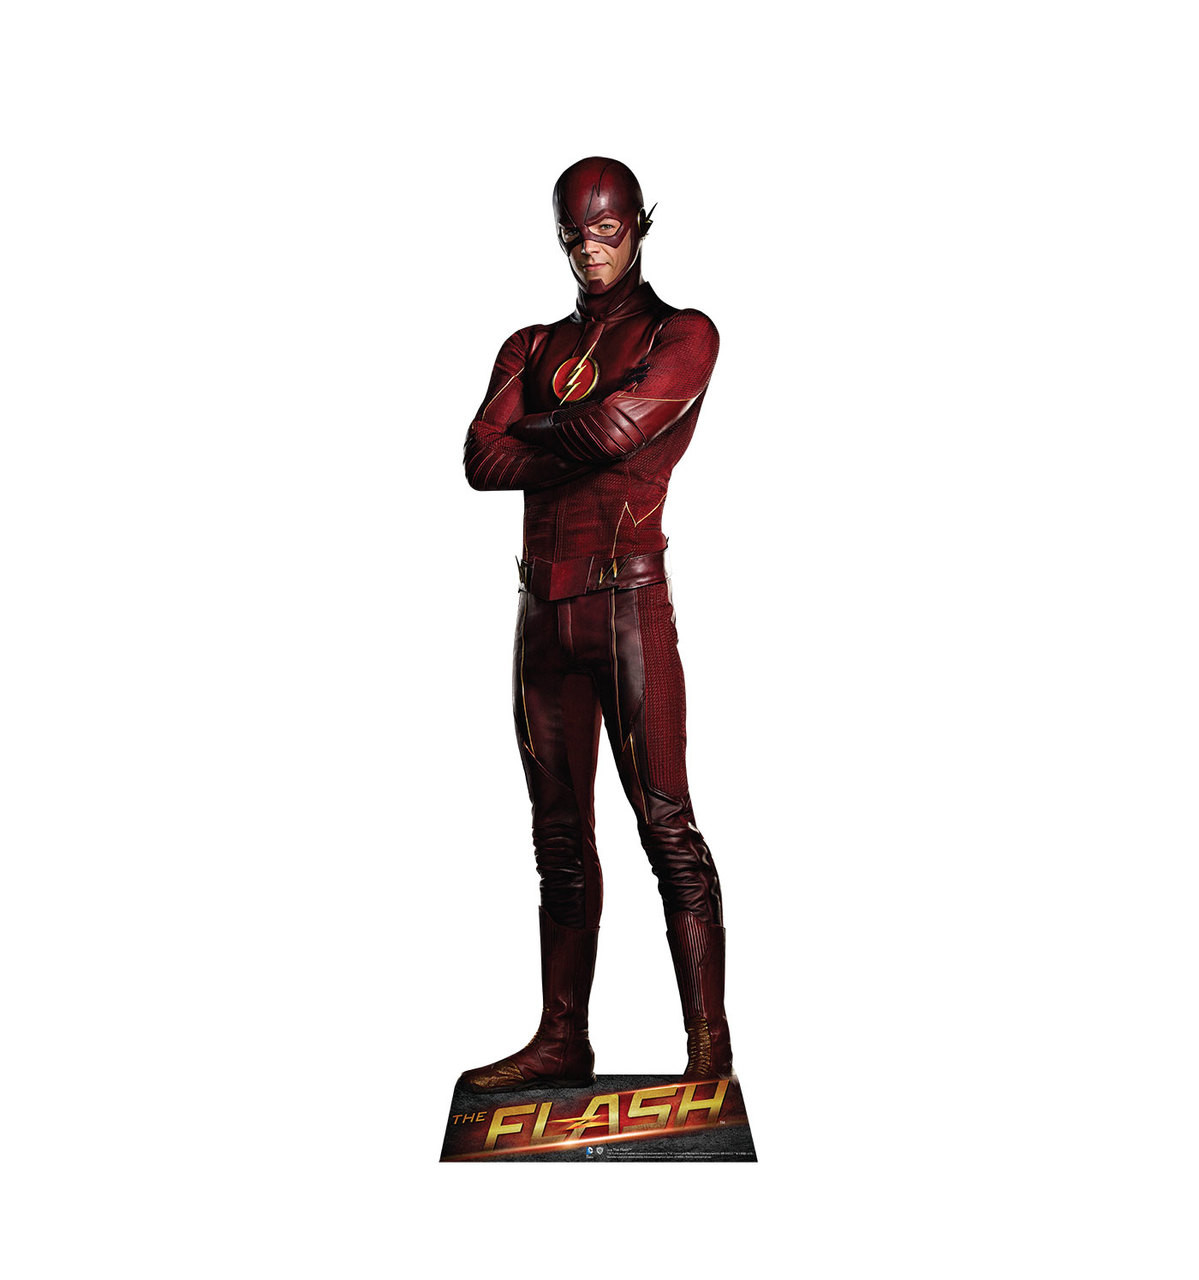 Flash - TV Show The Flash-Cardboard Cutout